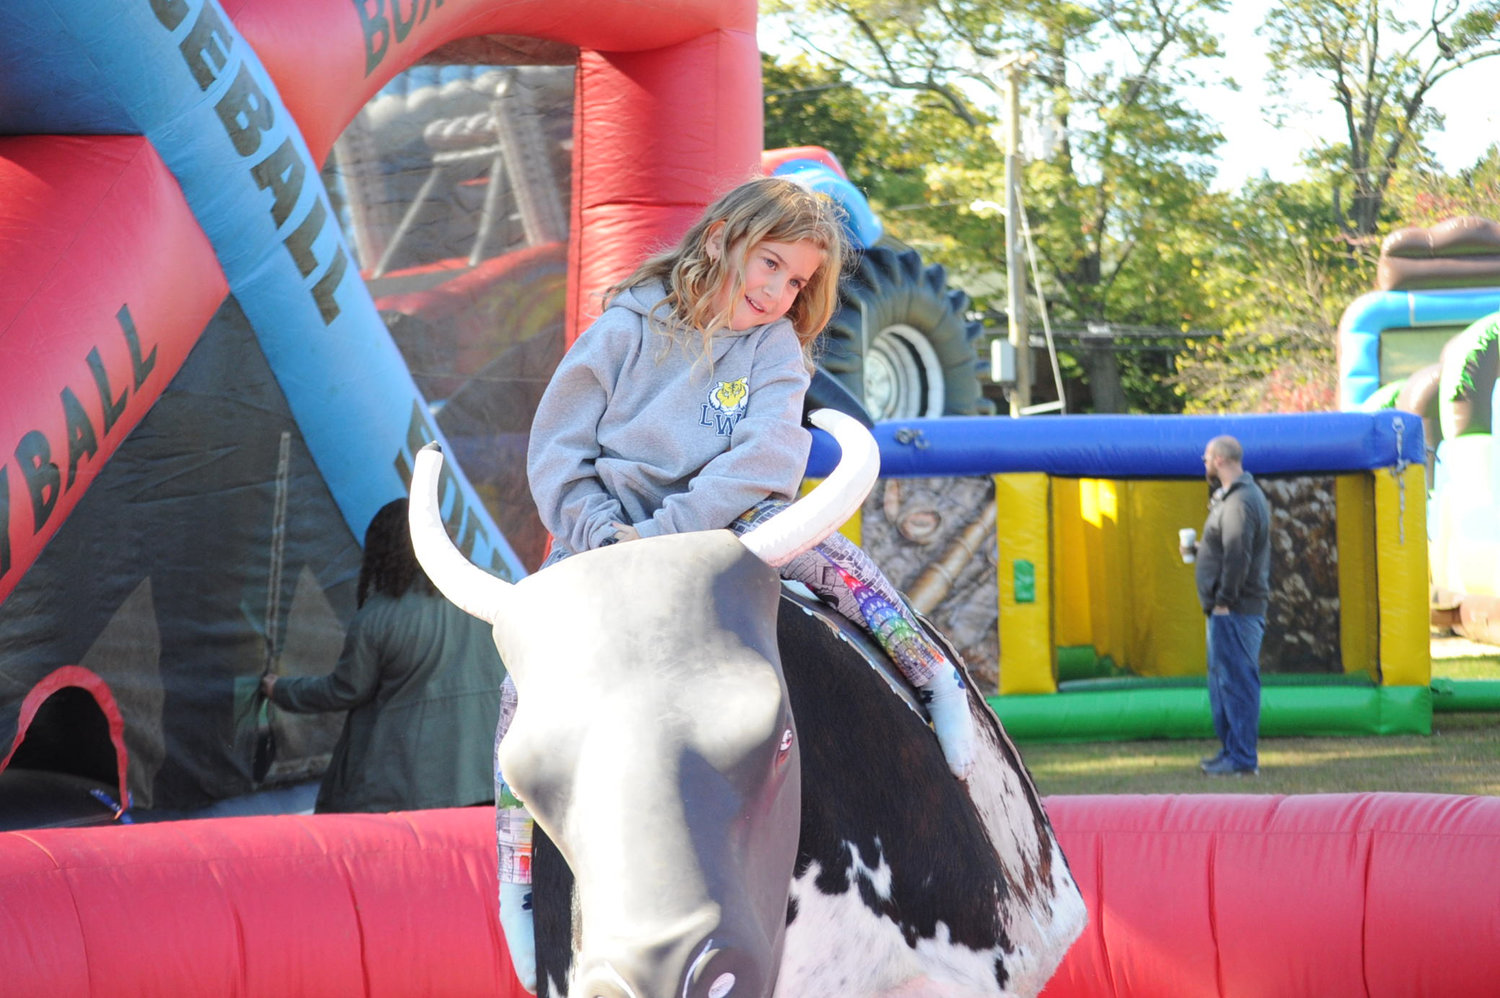 Miranda Feder-Grey did her best Lane Frost impersonation as she rode the mechanical bull.